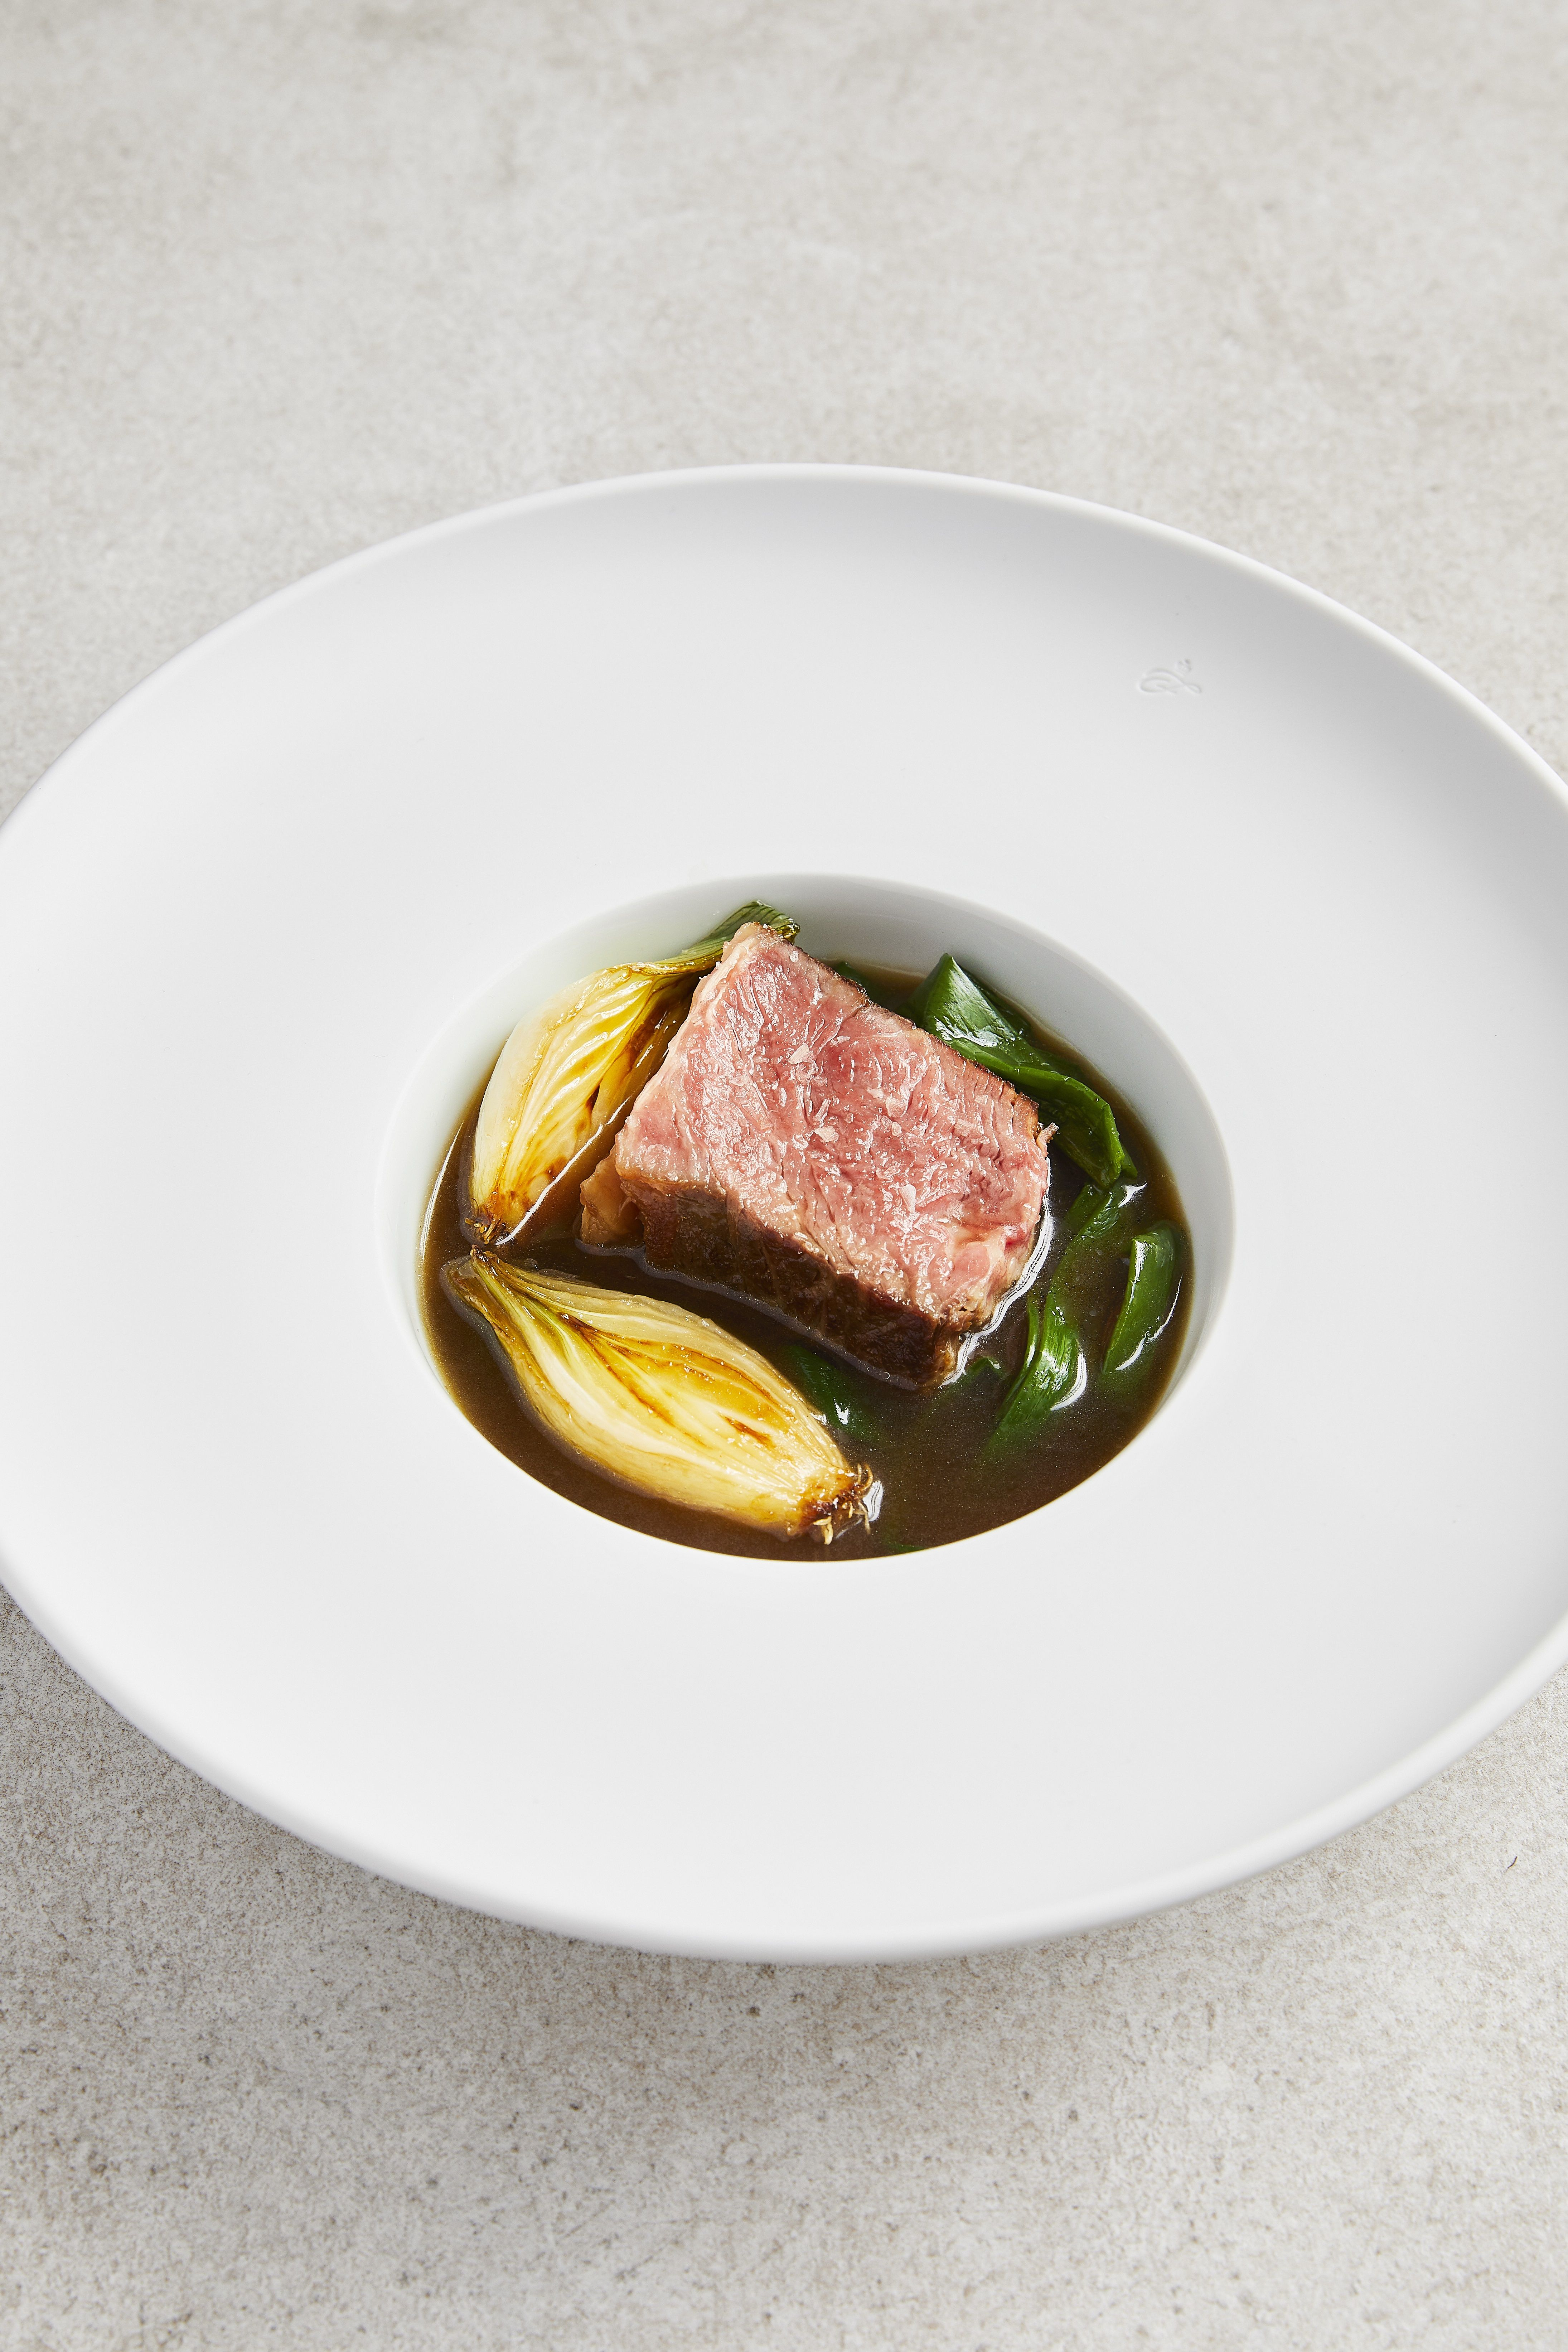 Beef Sirloin With Caramelised Onion Broth Great British Chefs Gourmet Food Plating Food Presentation